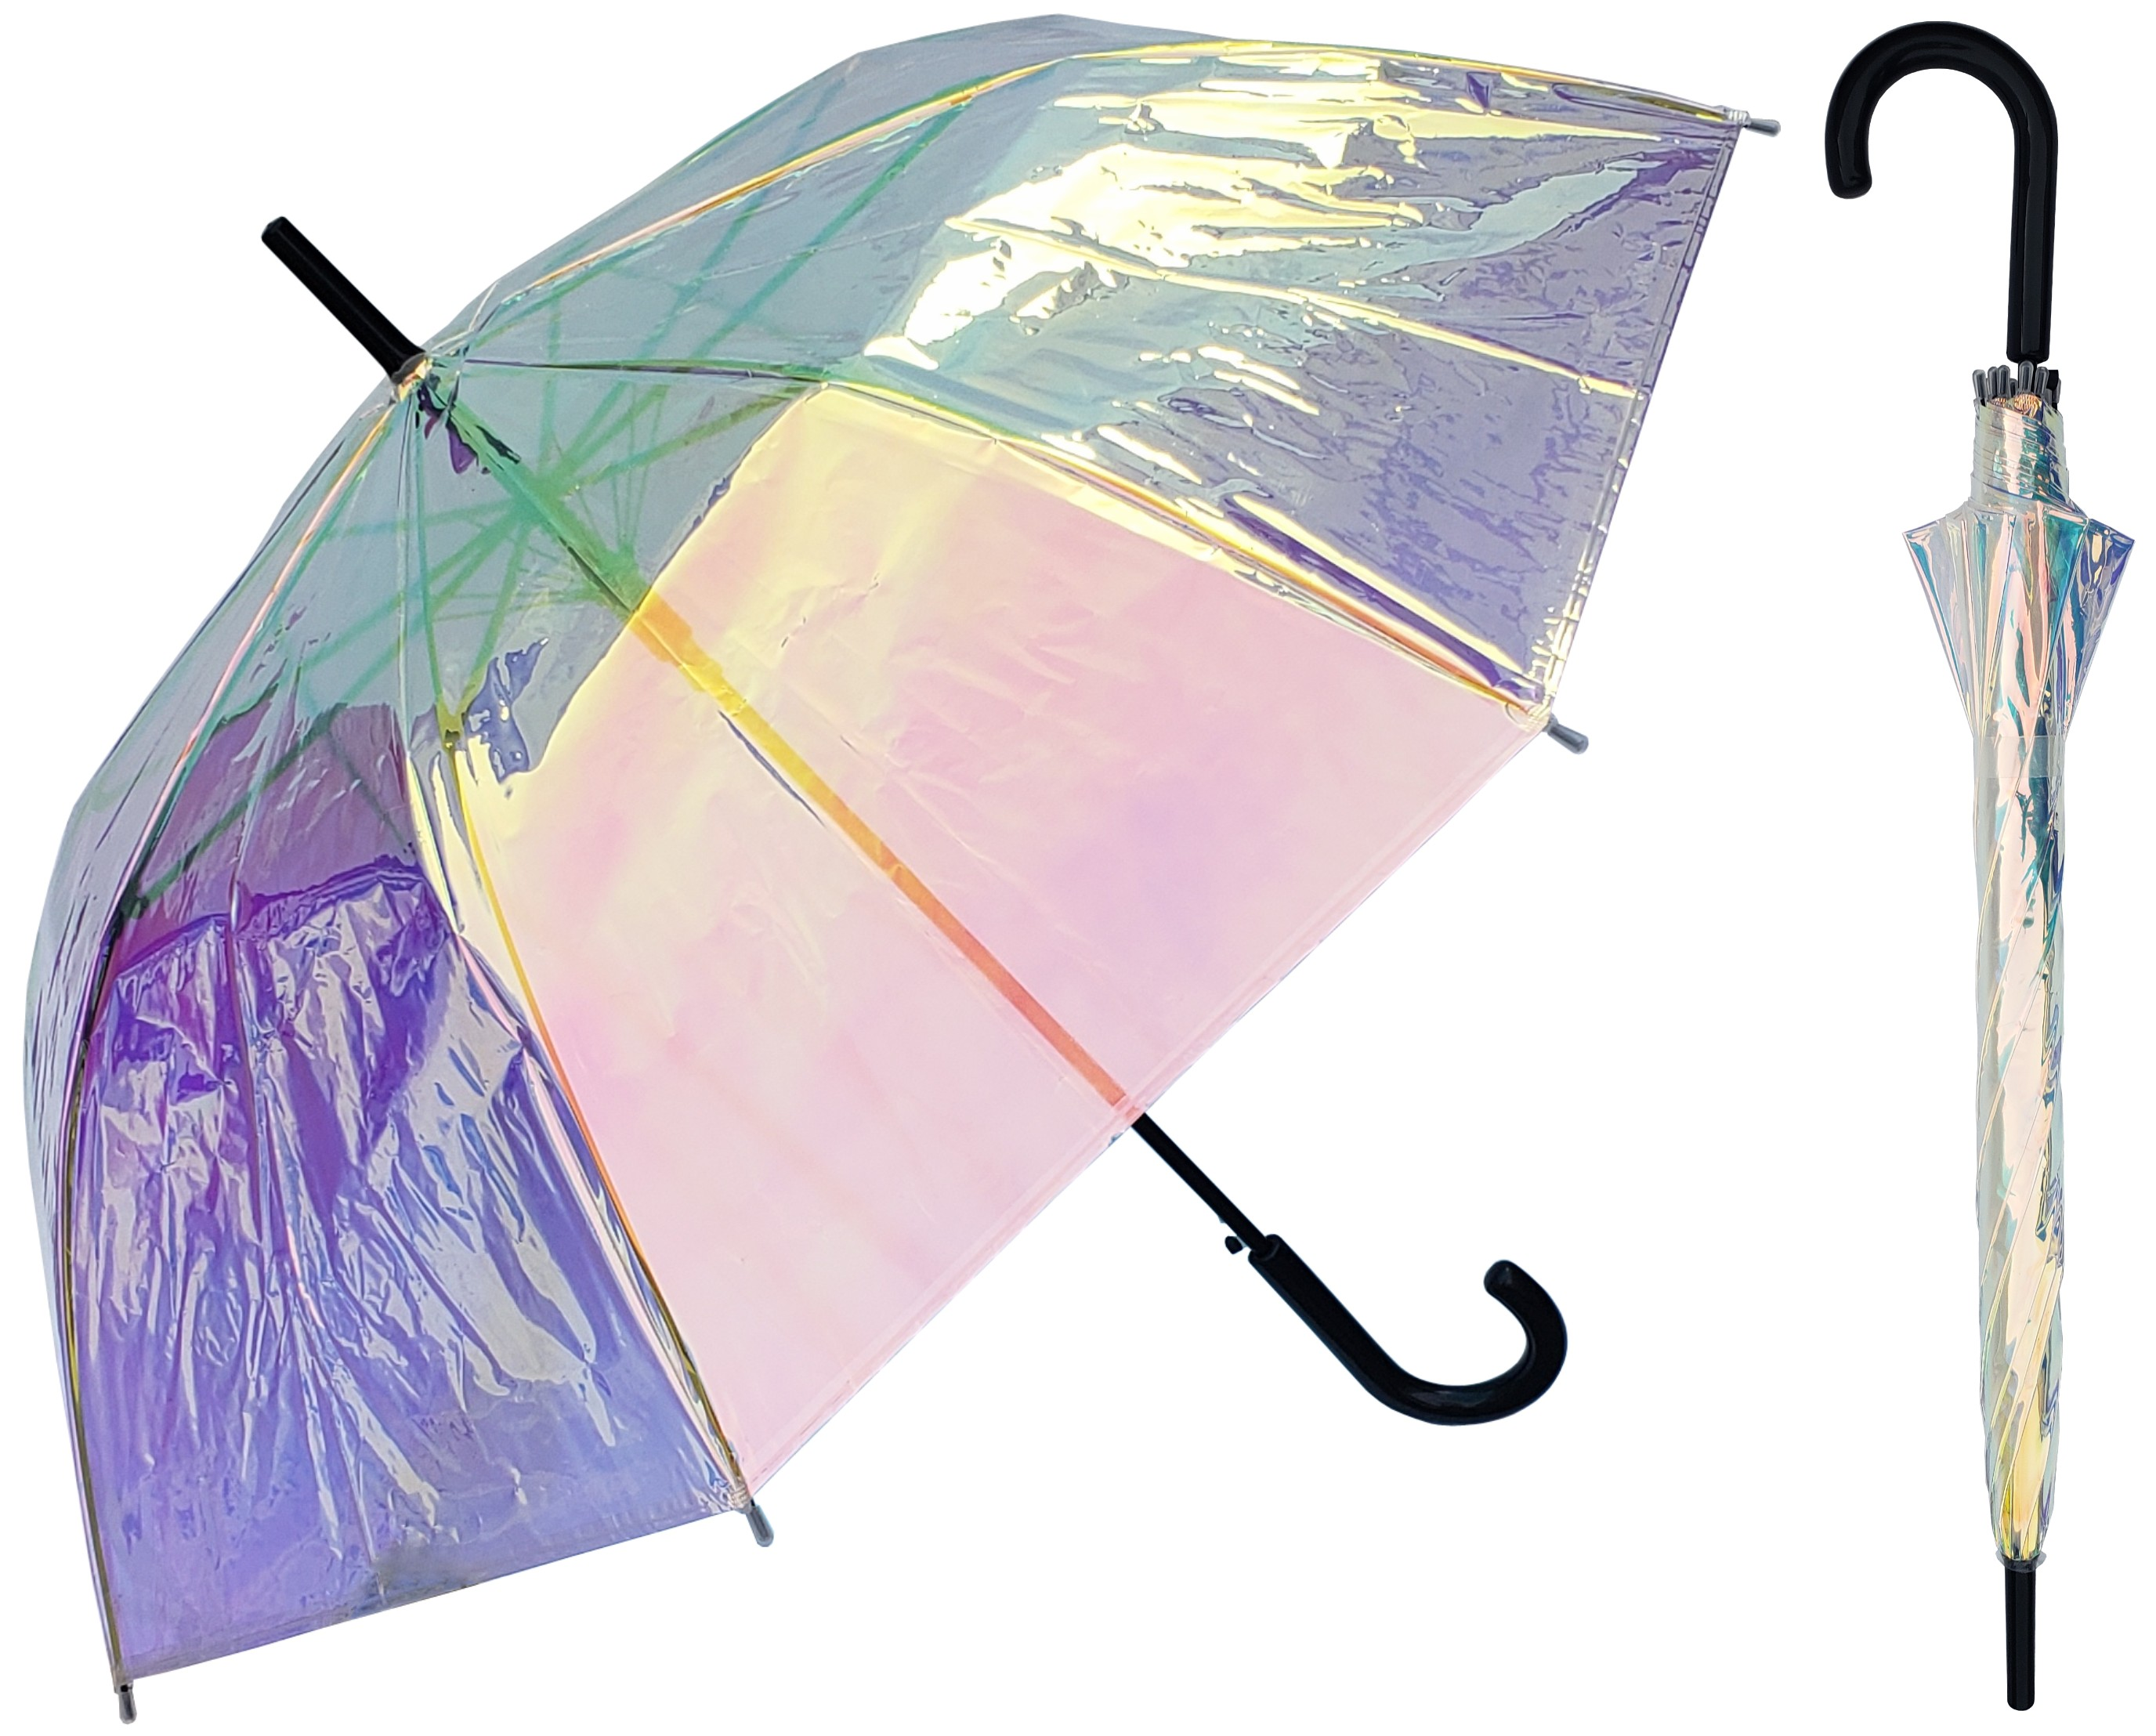 W3469 HOLO UMBRELLA